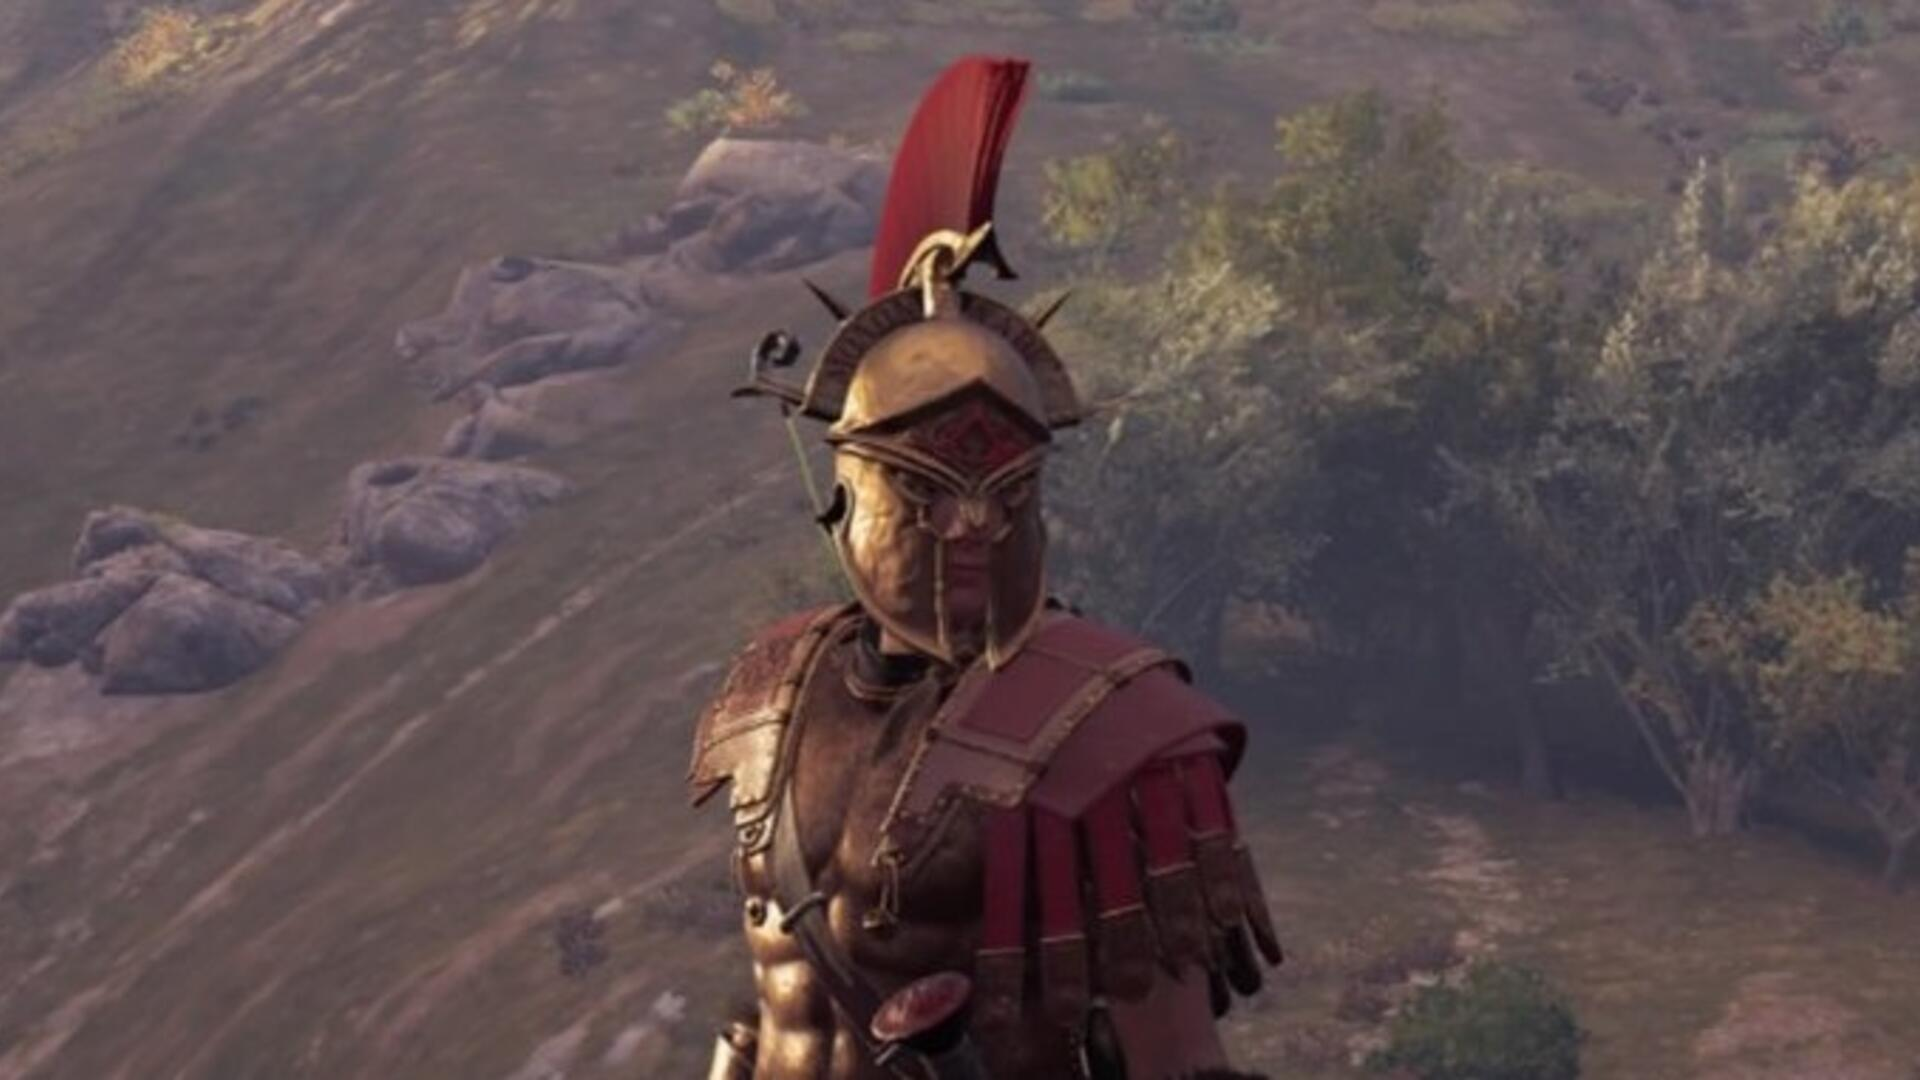 Assassin's Creed Odyssey Armor - How to Get the Best Armor